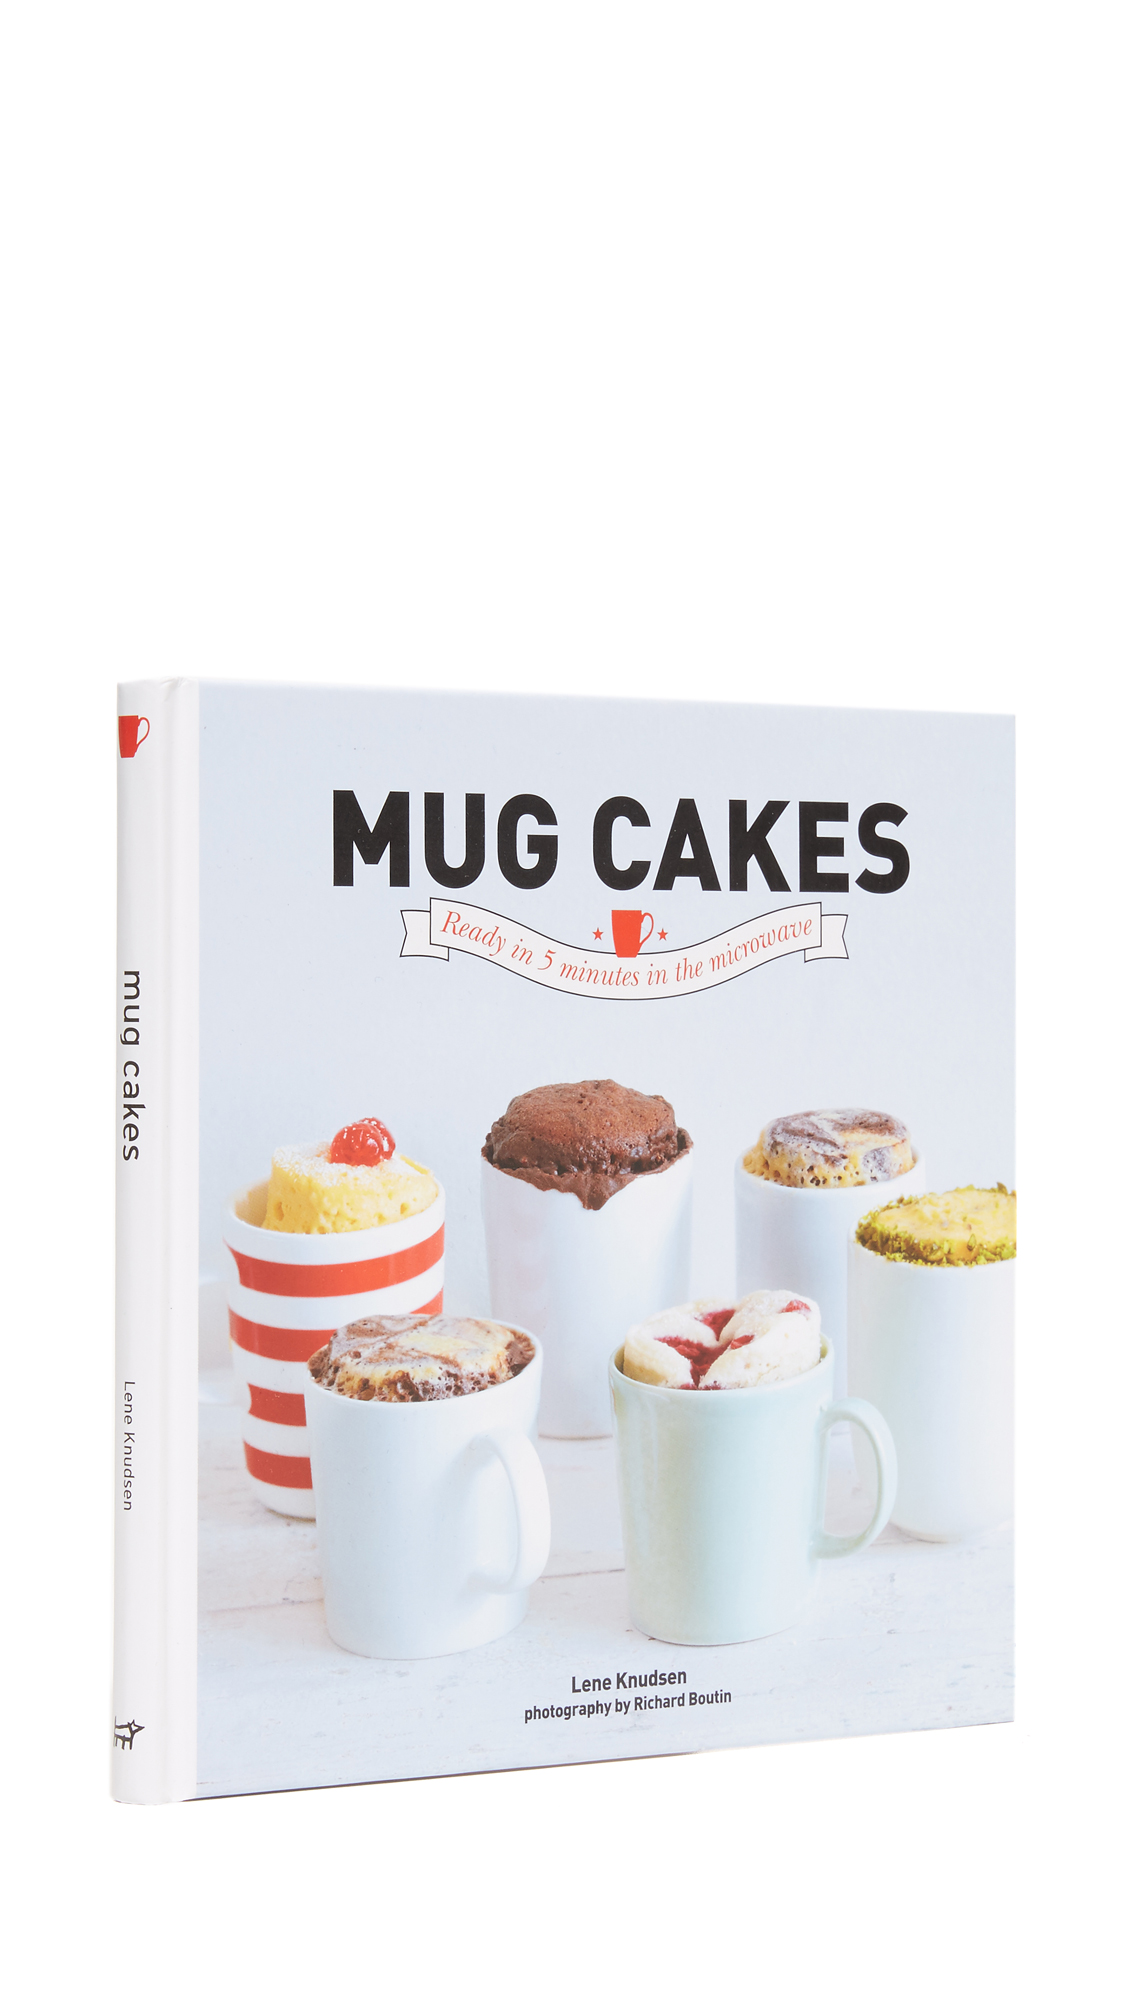 Books with Style Mug Cakes - No Color